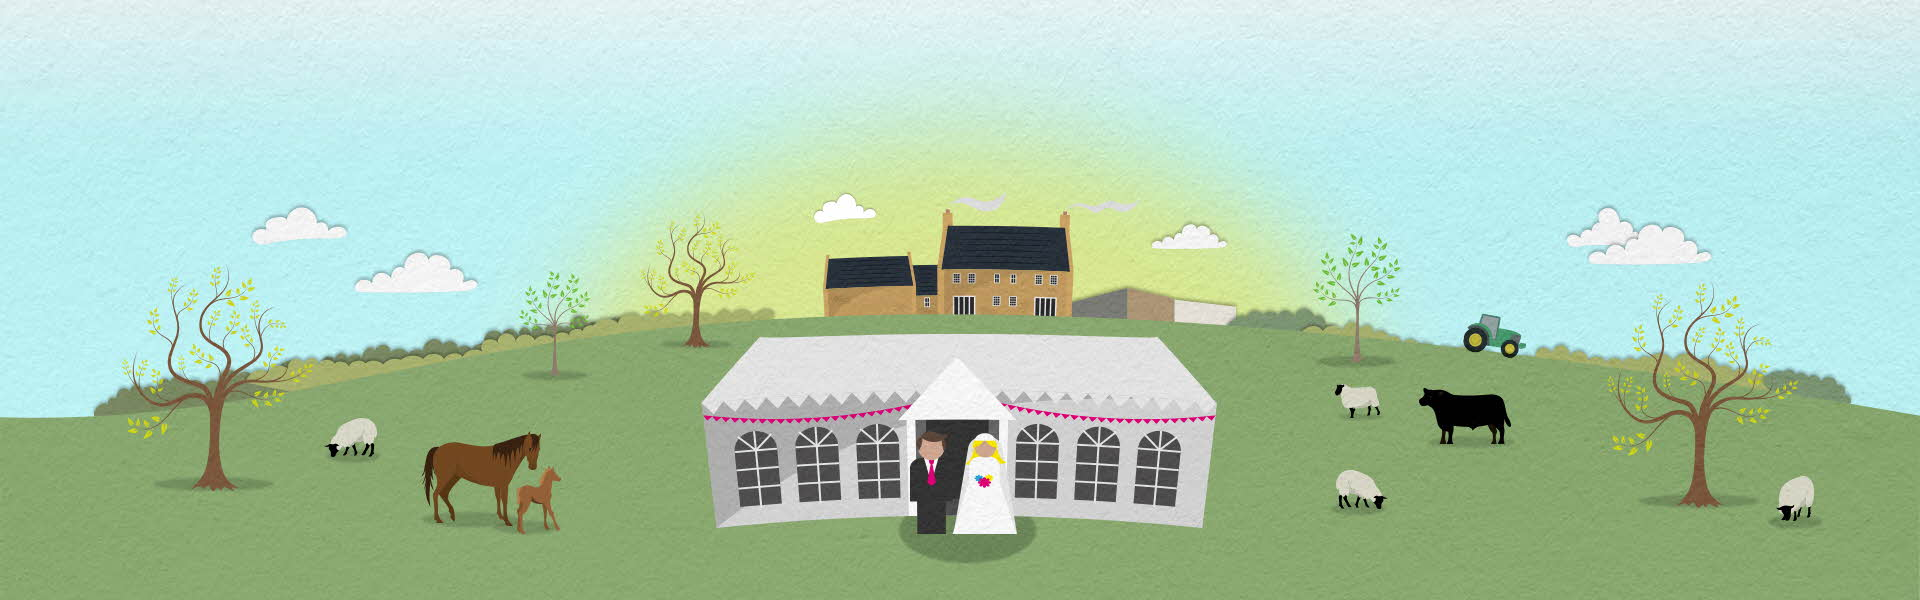 Contact Home Farm Weddings